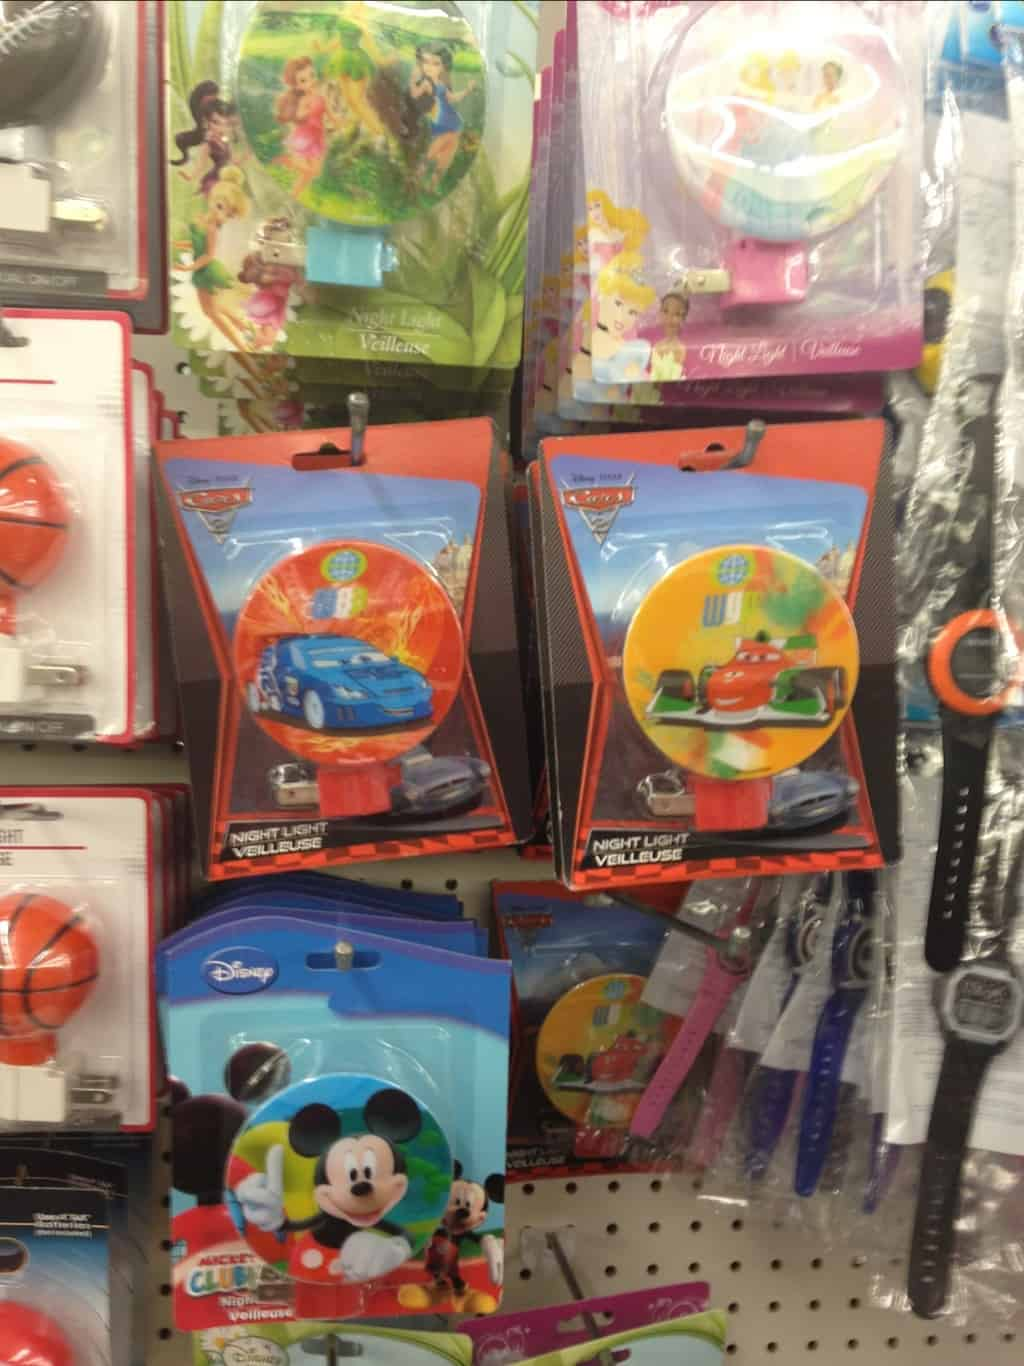 Prepping for a Disney trip at The Dollar Tree from WDWPrepSchool.com